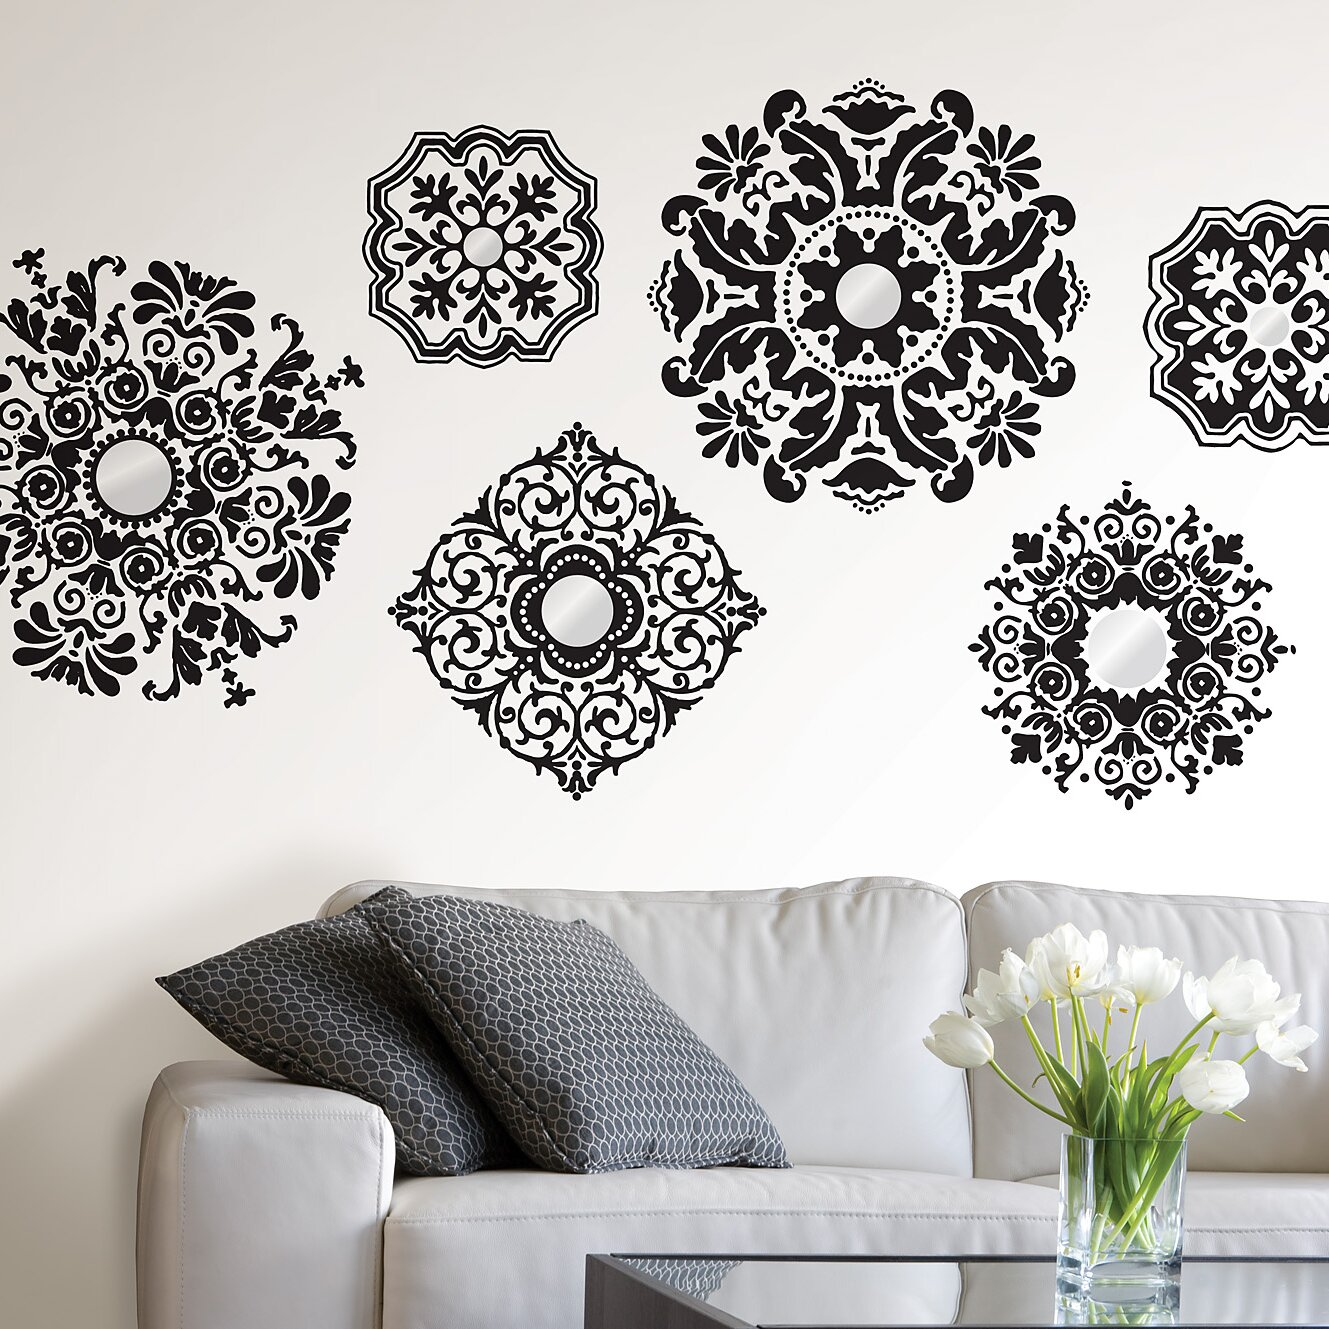 WallPops WallPops Kits 6 Piece Baroque Wall Decal Set